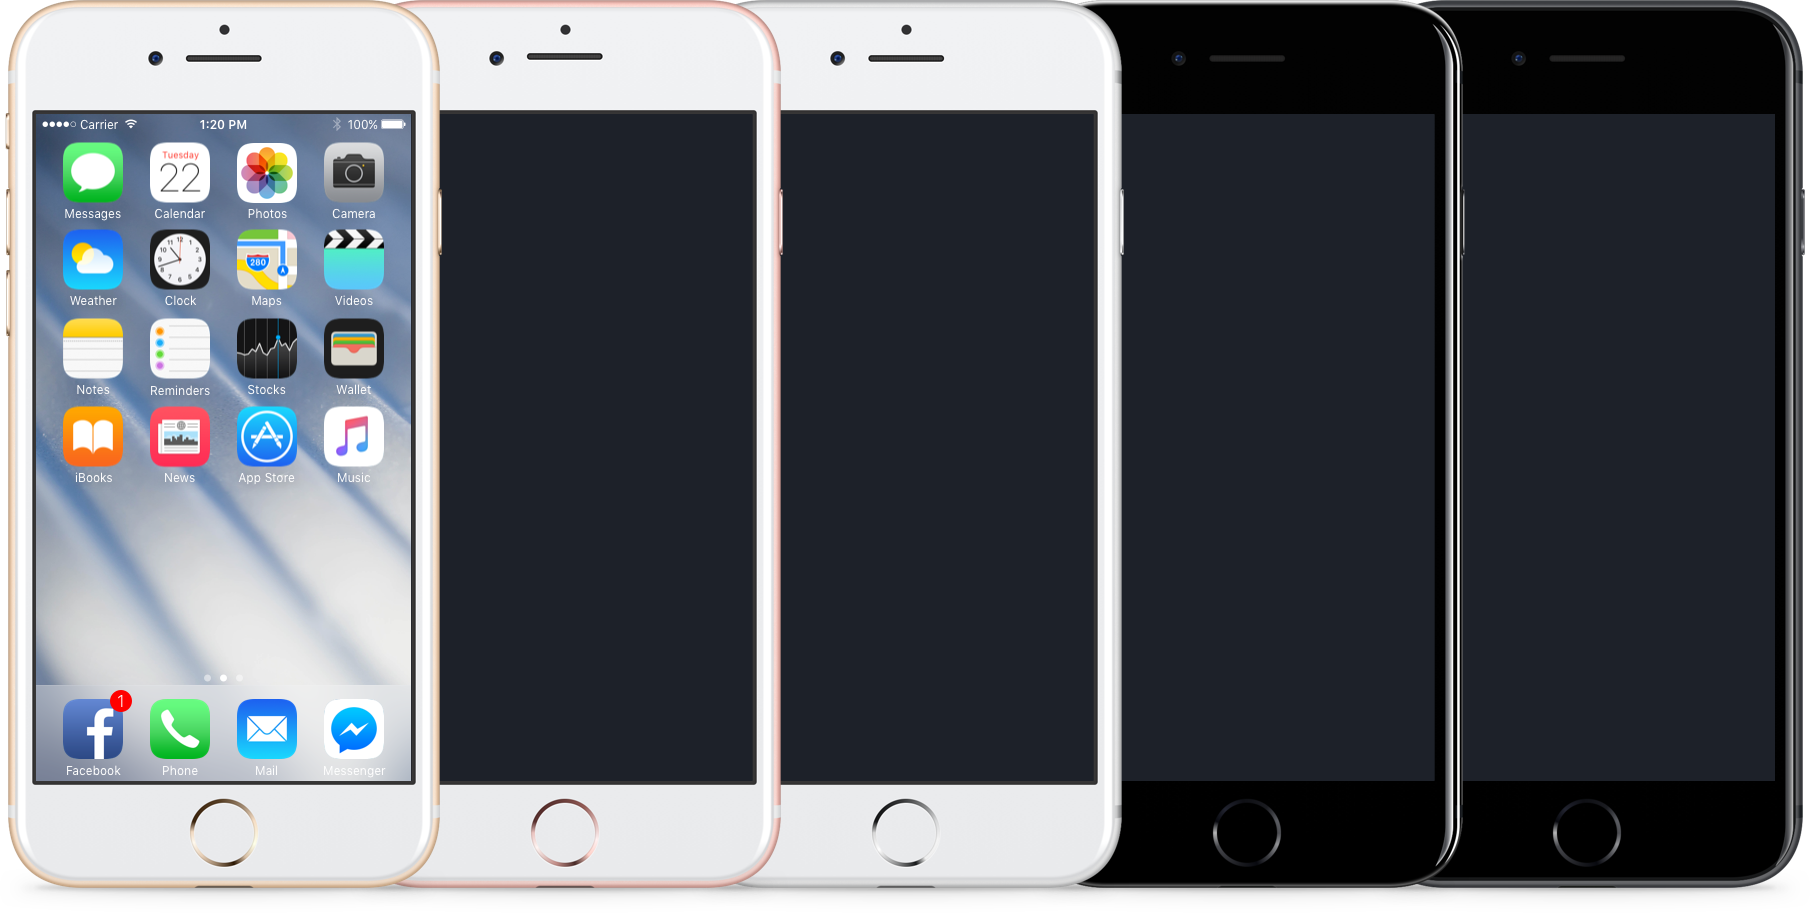 Sketch Photoshop Figma And Xd Templates Of Gui Elements Found In The Public Release Of Ios 10 Facebook Design Ios Design Photoshop